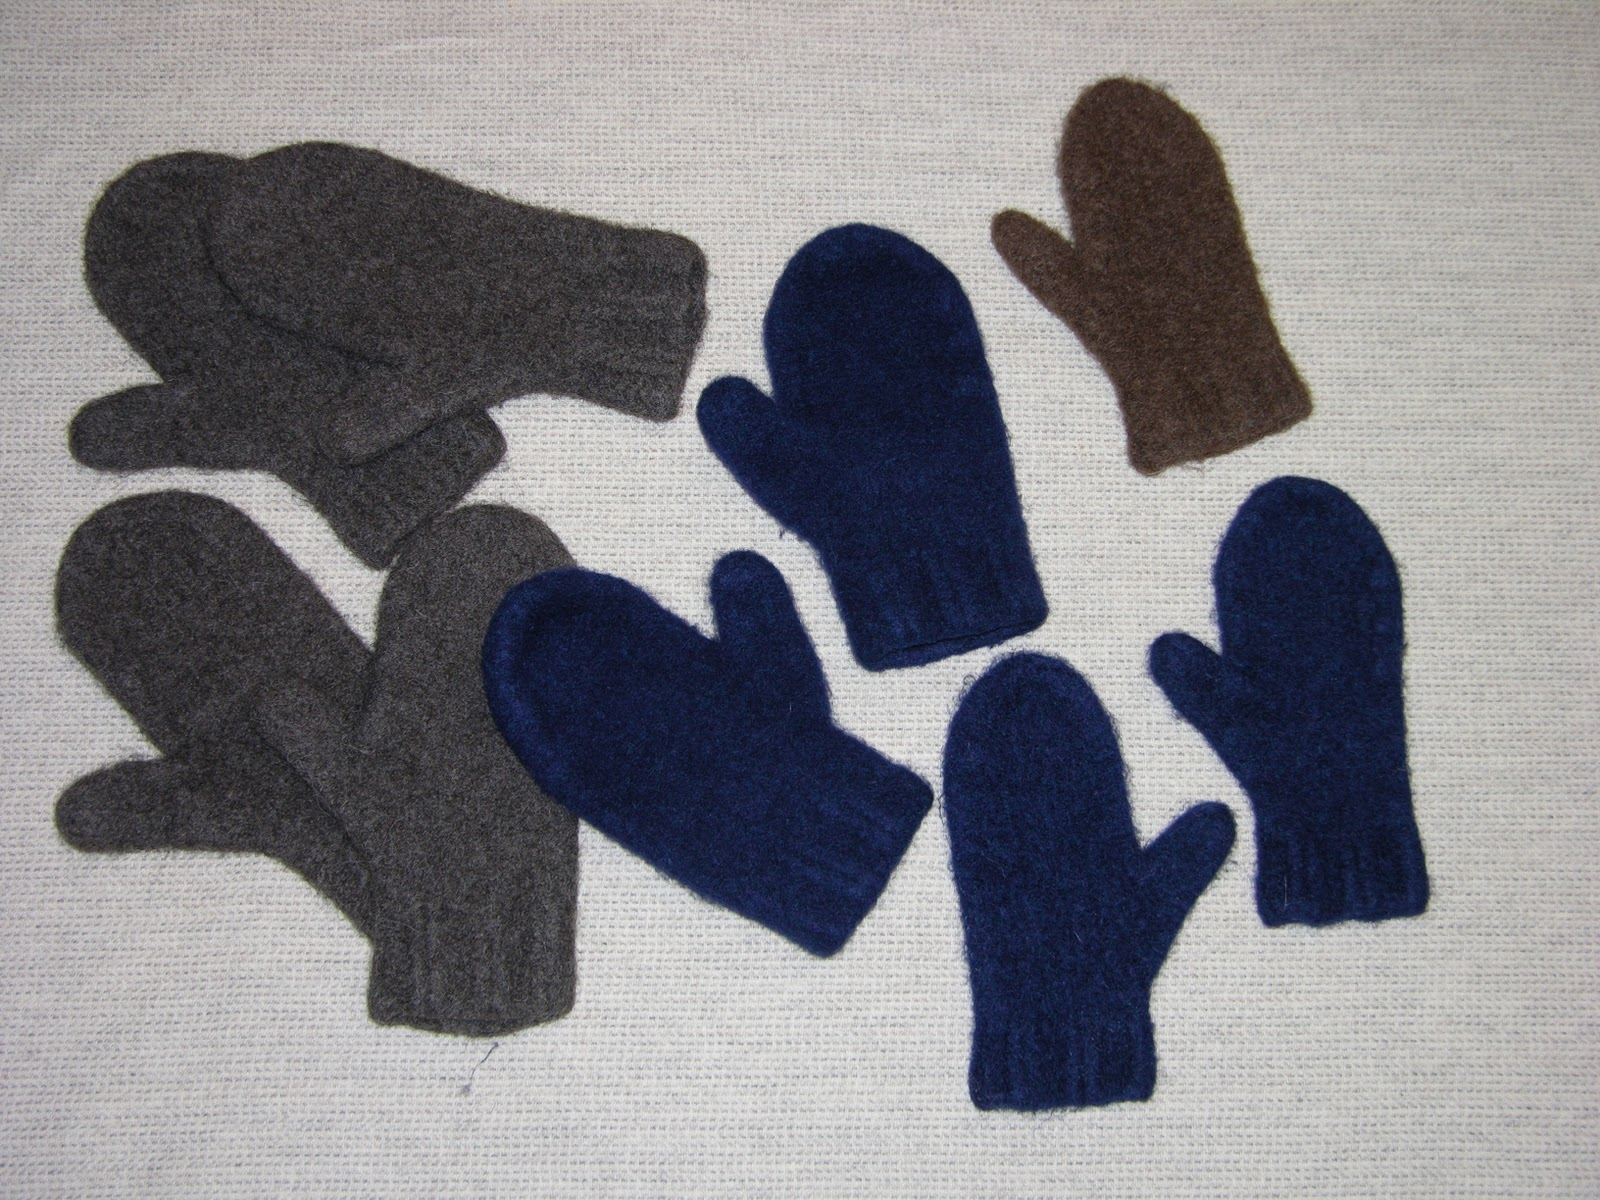 Here are the felted pairs that just came out of the wash.